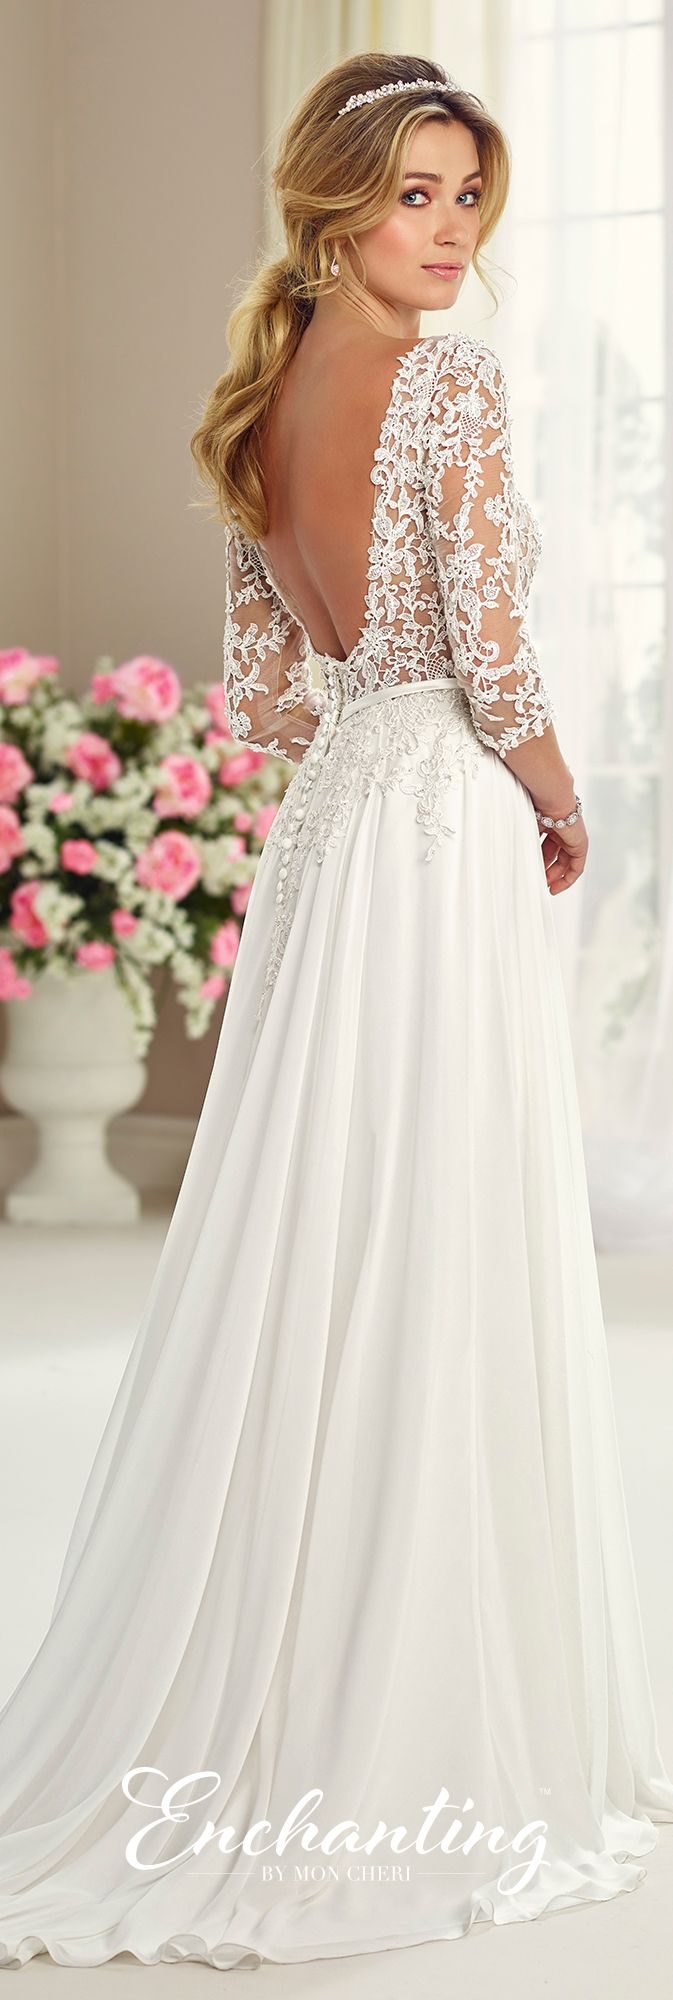 44c073d492b2a7f1082d56c74d1f43e6--country-wedding-dresses-with-sleeves-scoop-back-wedding-dress